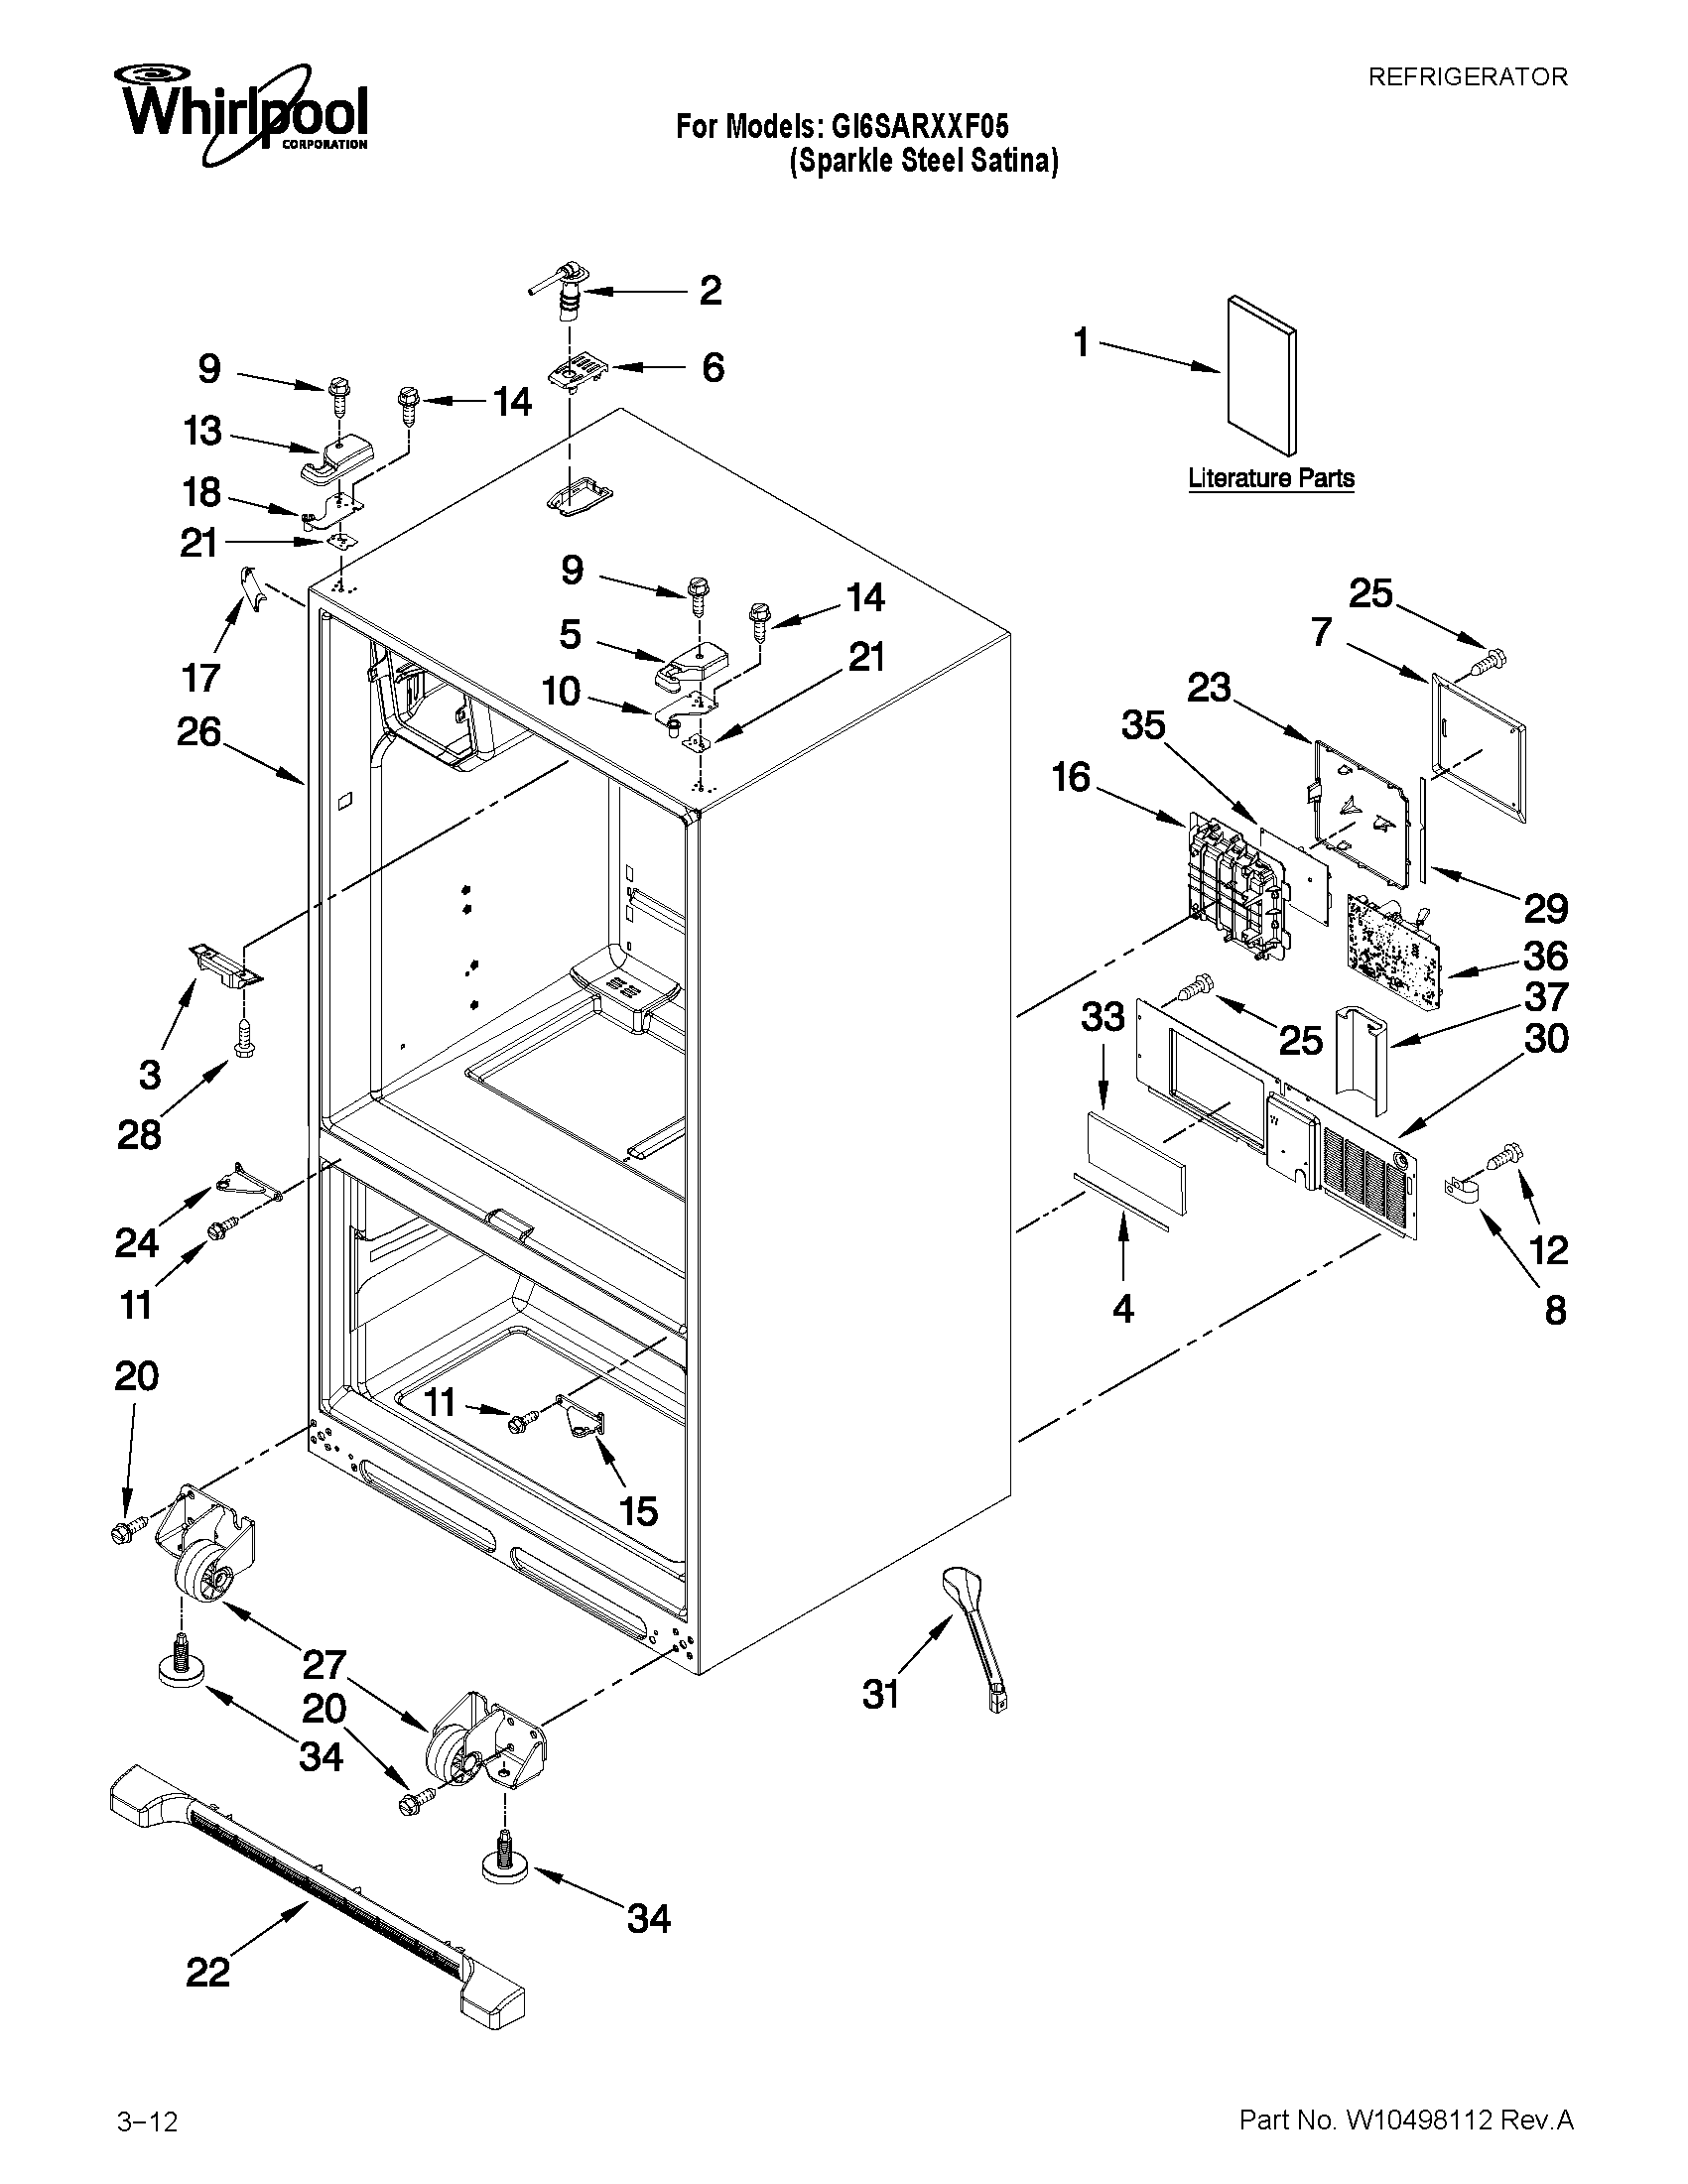 Whirlpool Drawing At Free For Personal Use Refrigerator Schematic 1701x2201 Model Gi6sarxxf05 Bottom Mount Genuine Parts